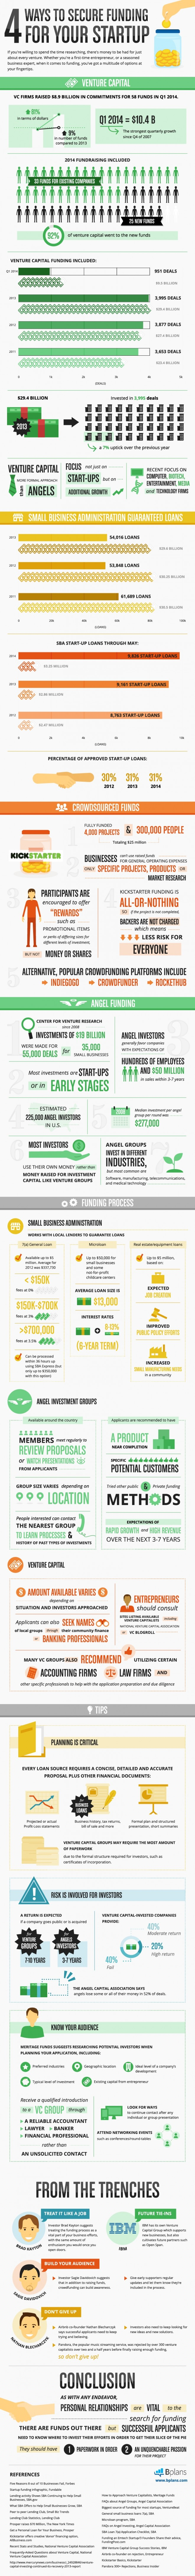 Sources of Small Business Funding